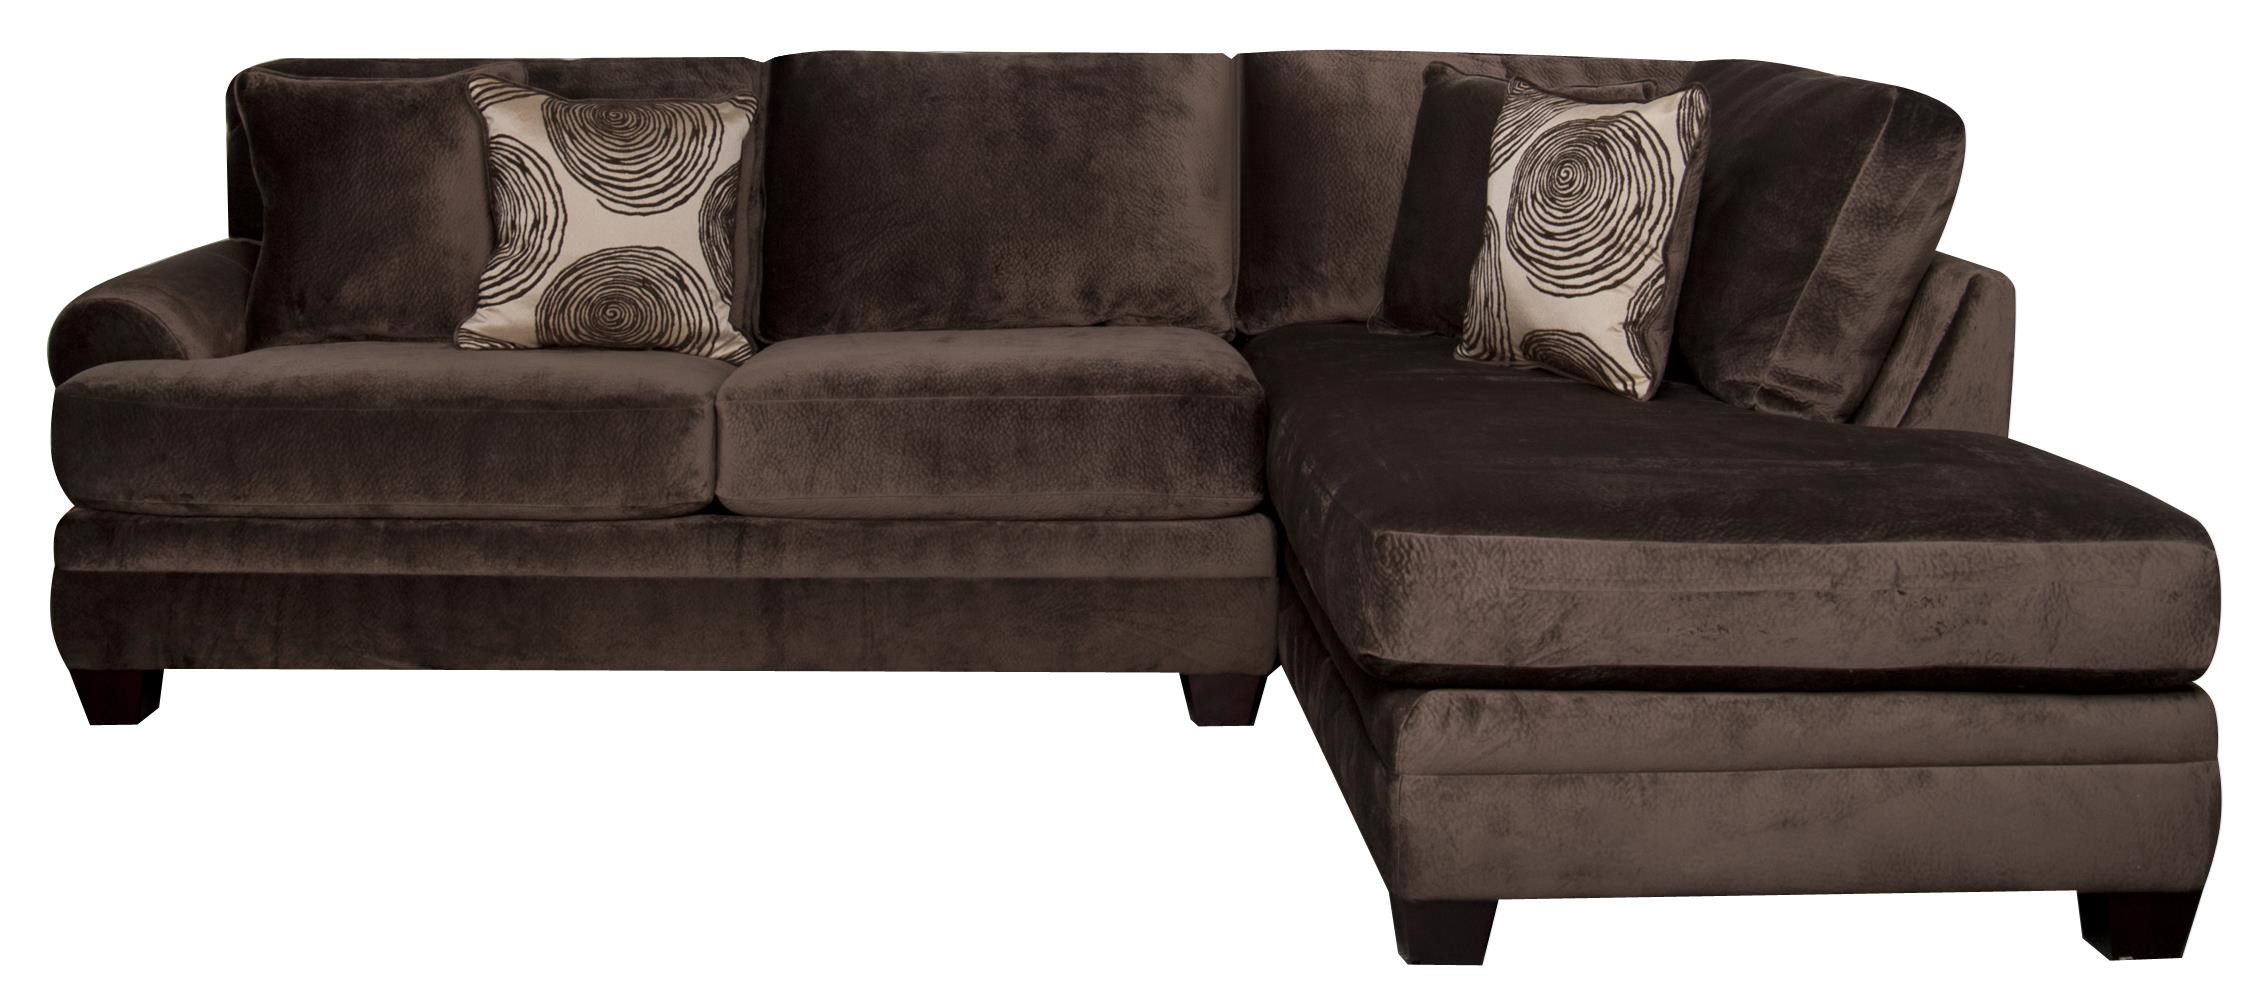 Morris Home Furnishings Agustus Agustus 2-Piece Sectional - Item Number: 117898356